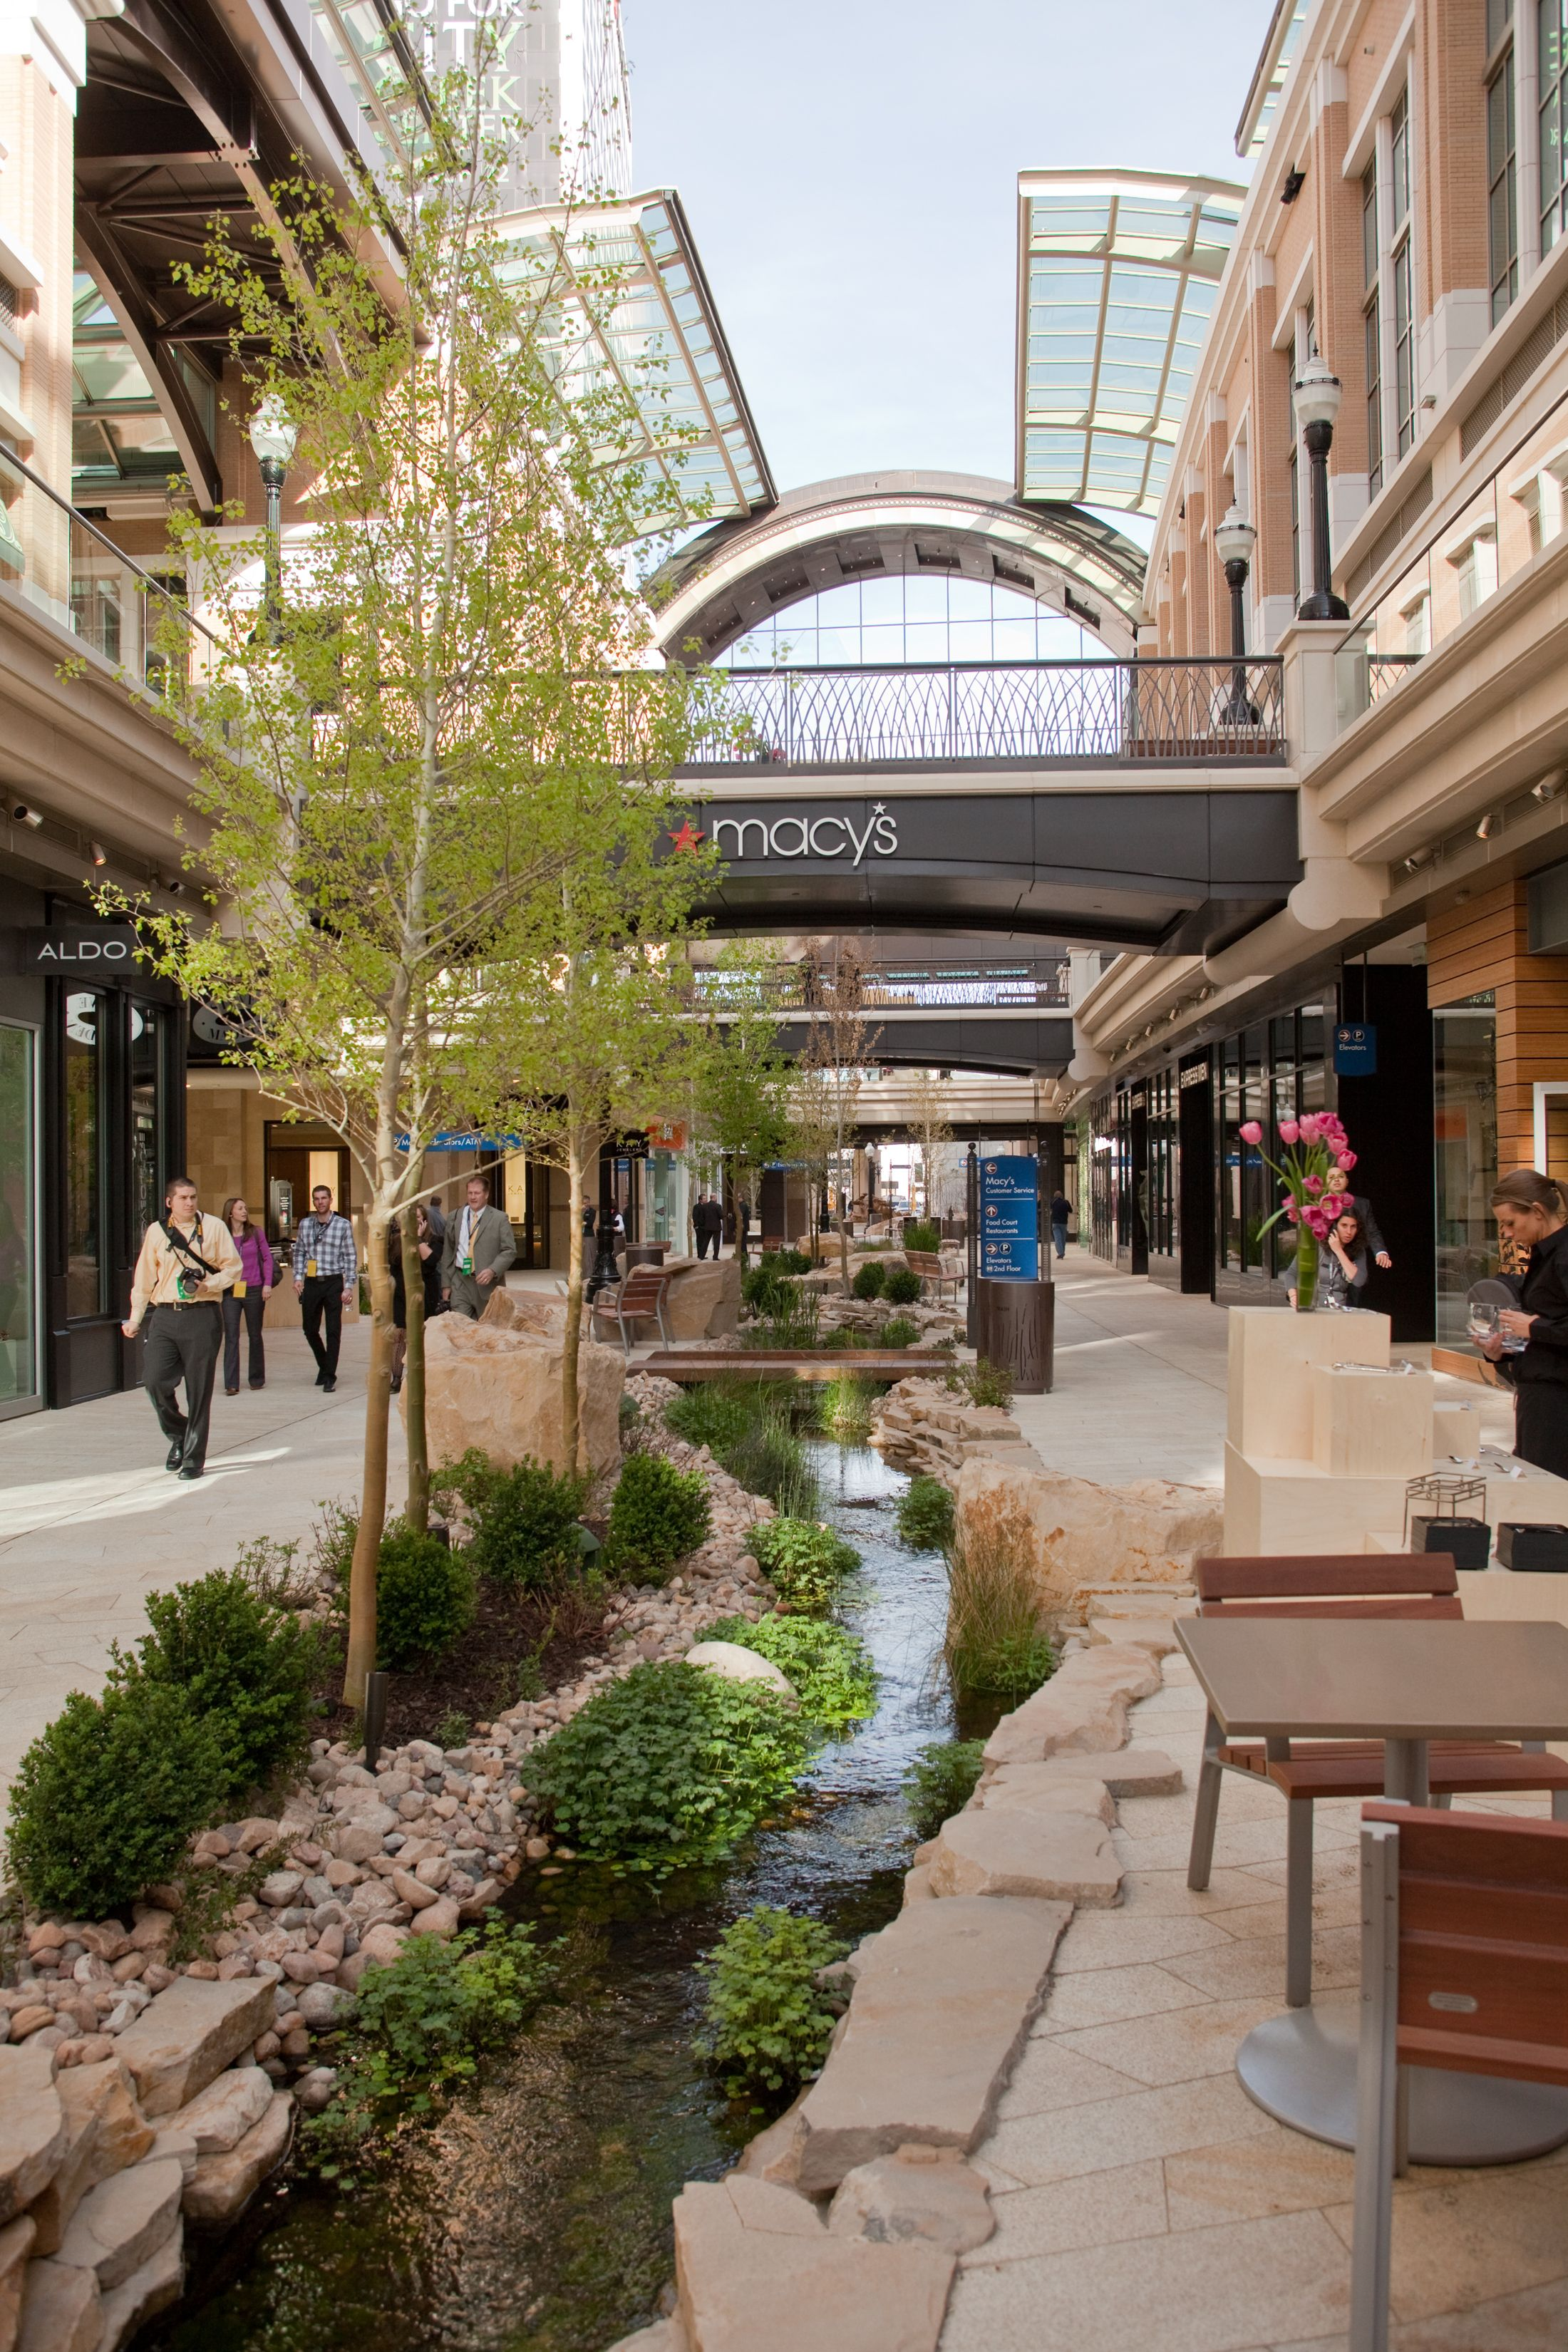 Area Mobilier Urbain City Creek Center Shopping Area In Slc Utah Photograph